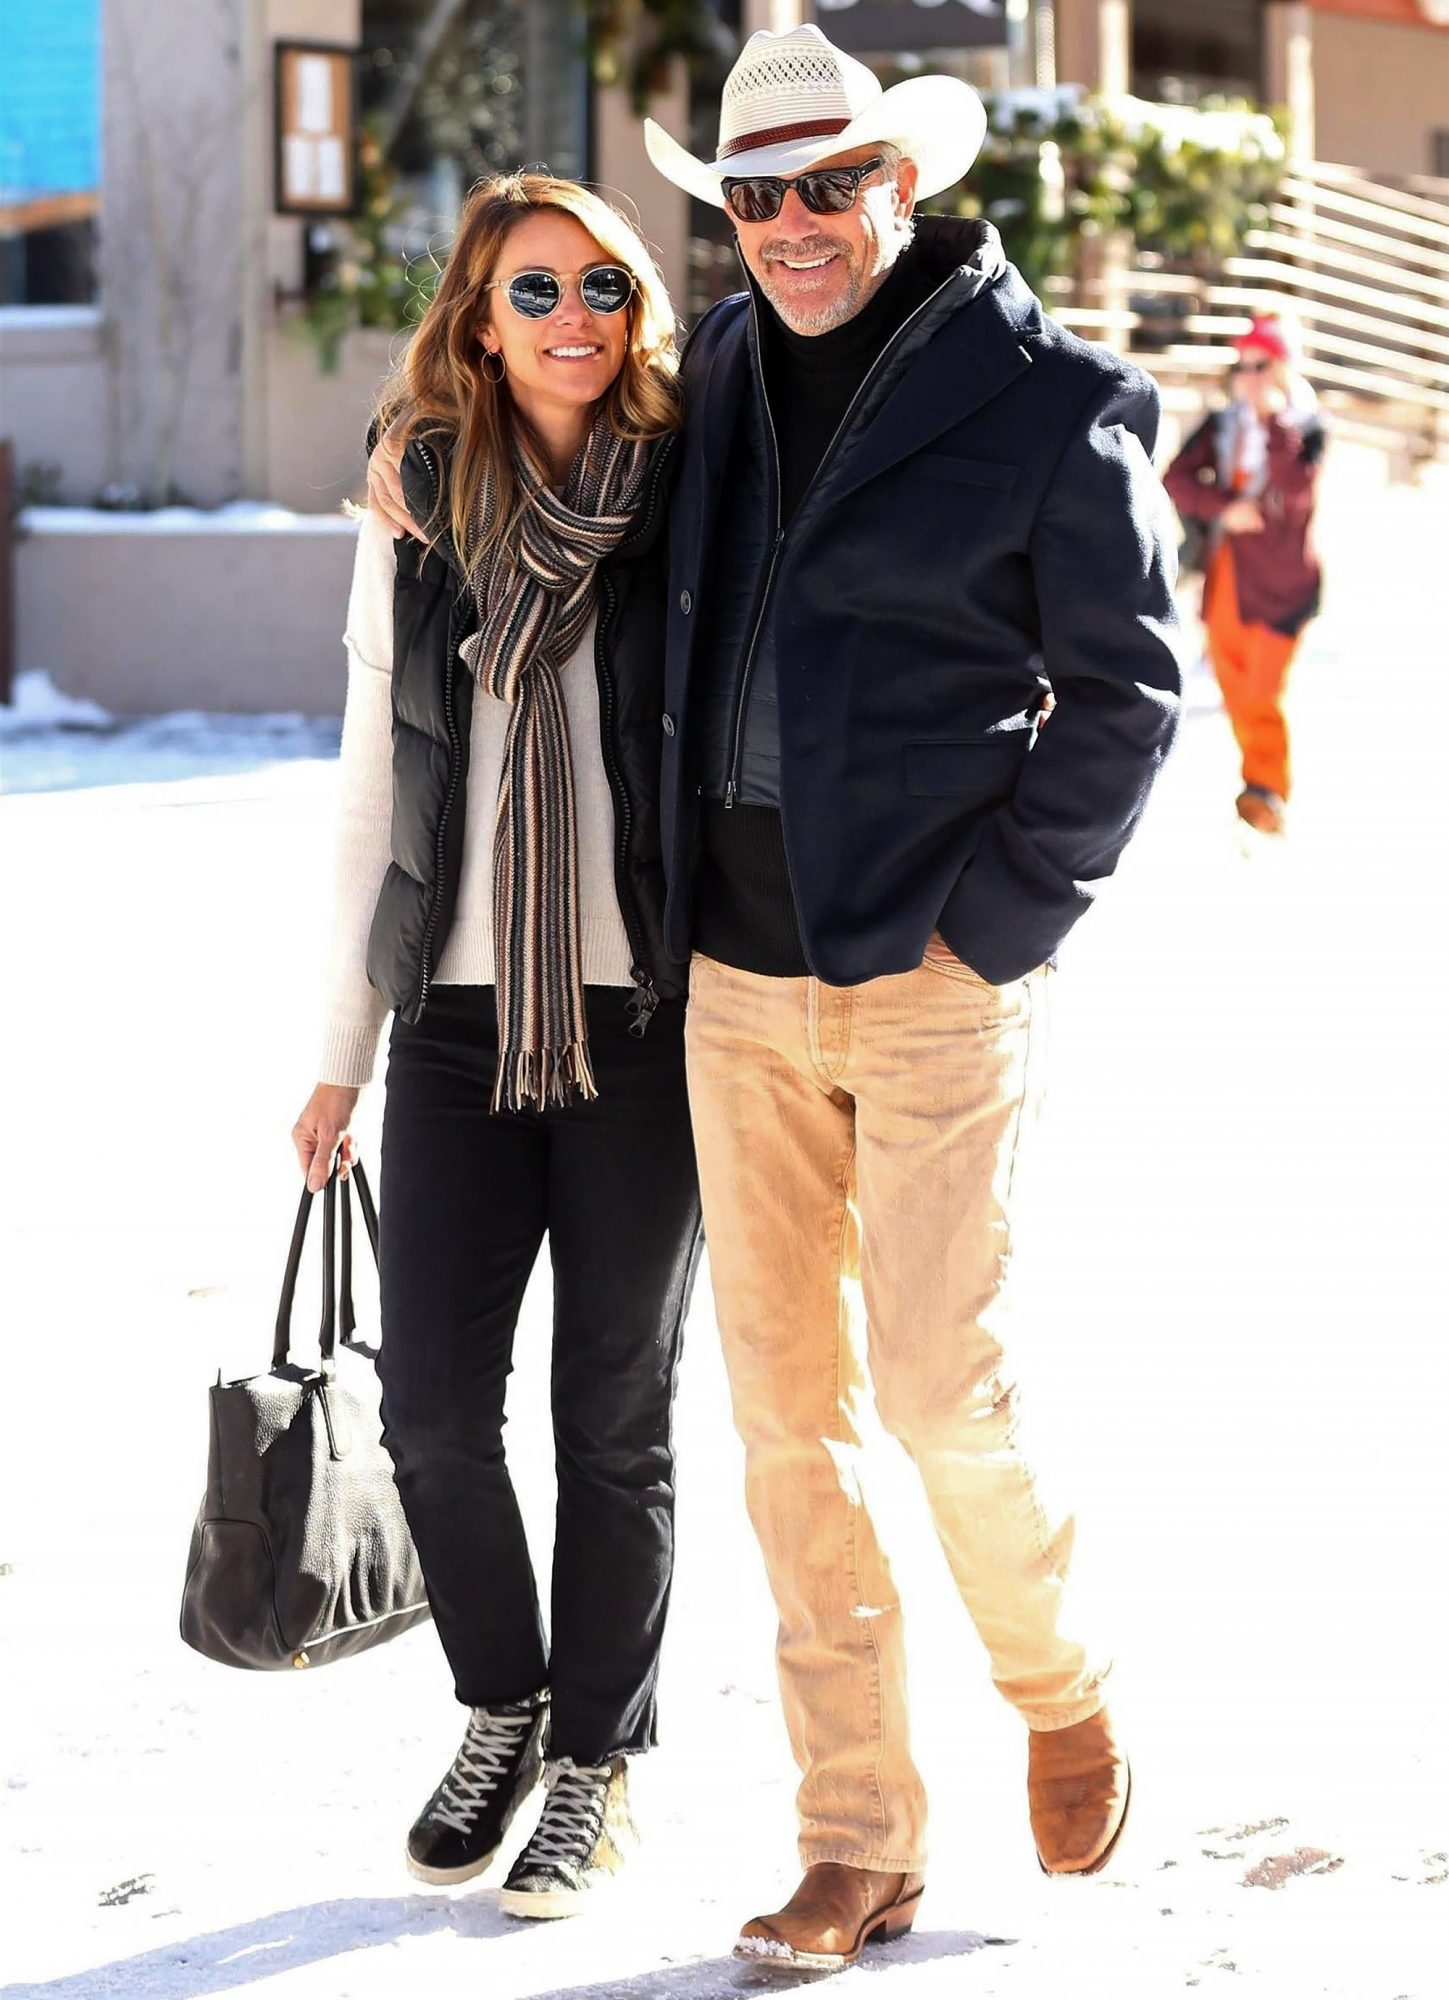 *EXCLUSIVE* Kevin Costner and wife Christine shop til they drop in Aspen